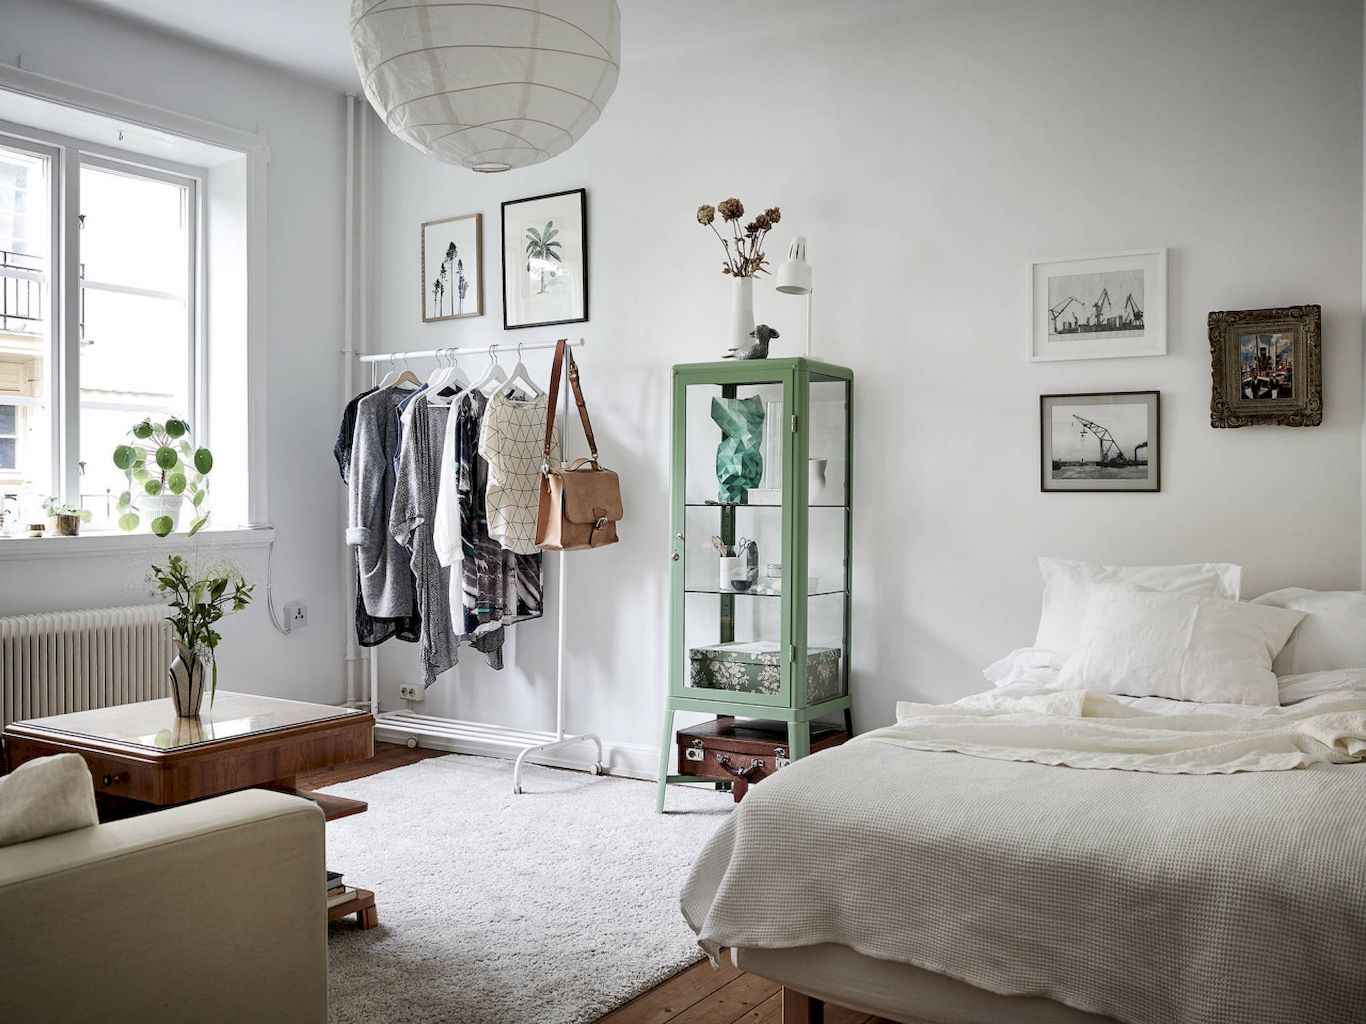 Small apartment studio decorating ideas on a budget (28)